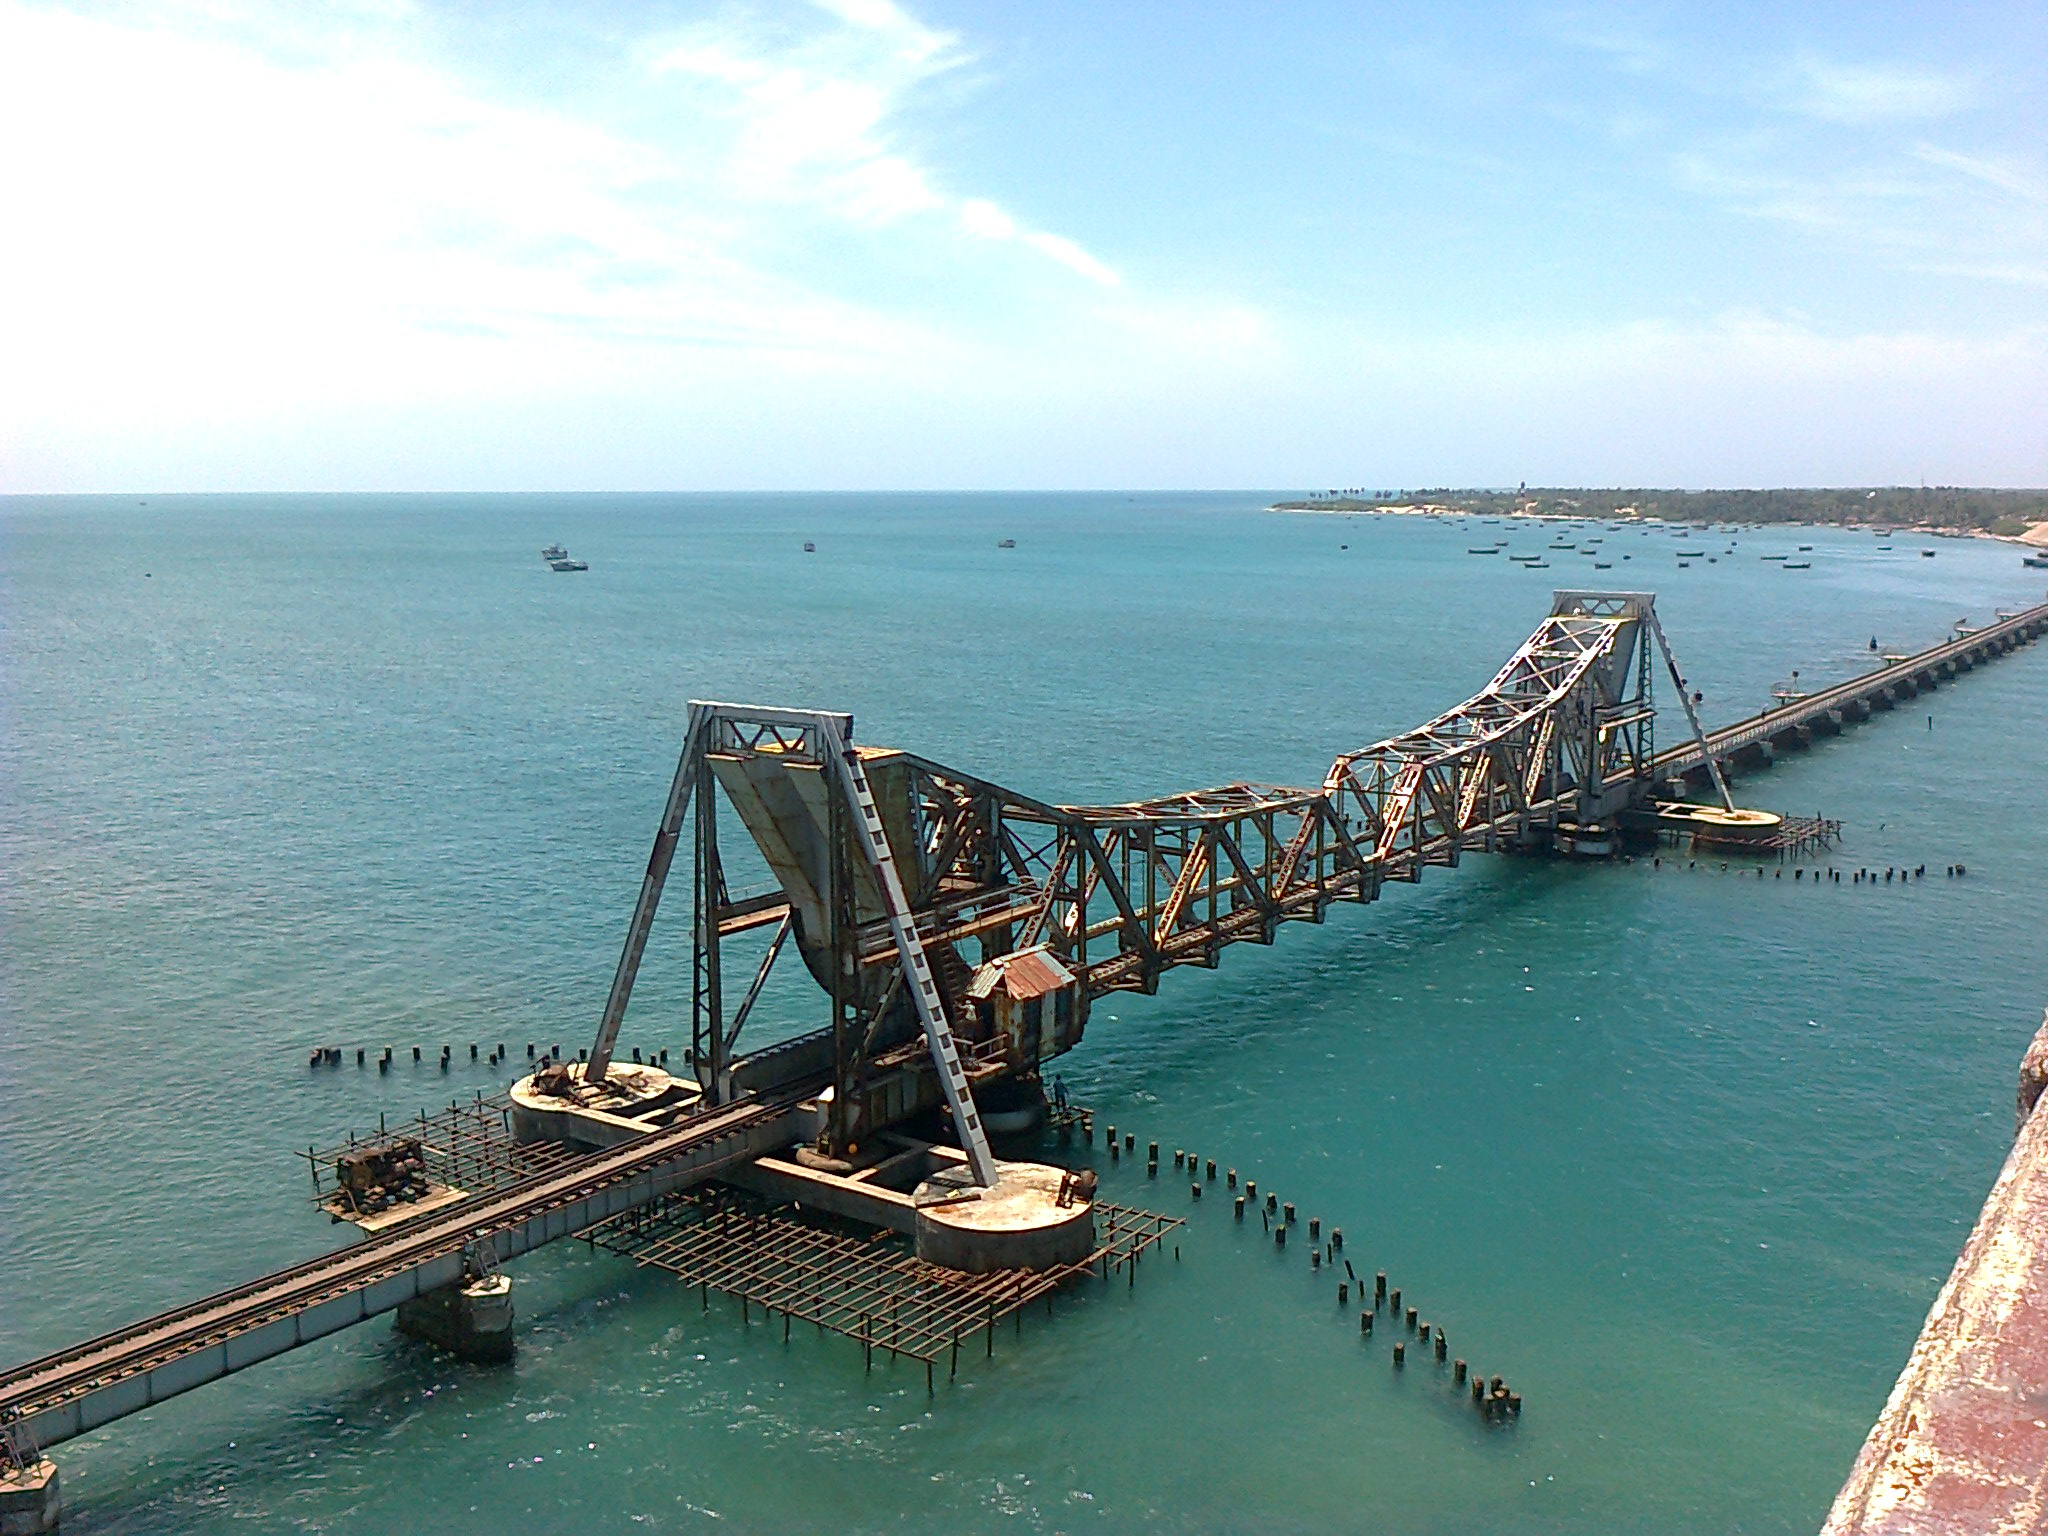 India's Pamban Railway Bridge